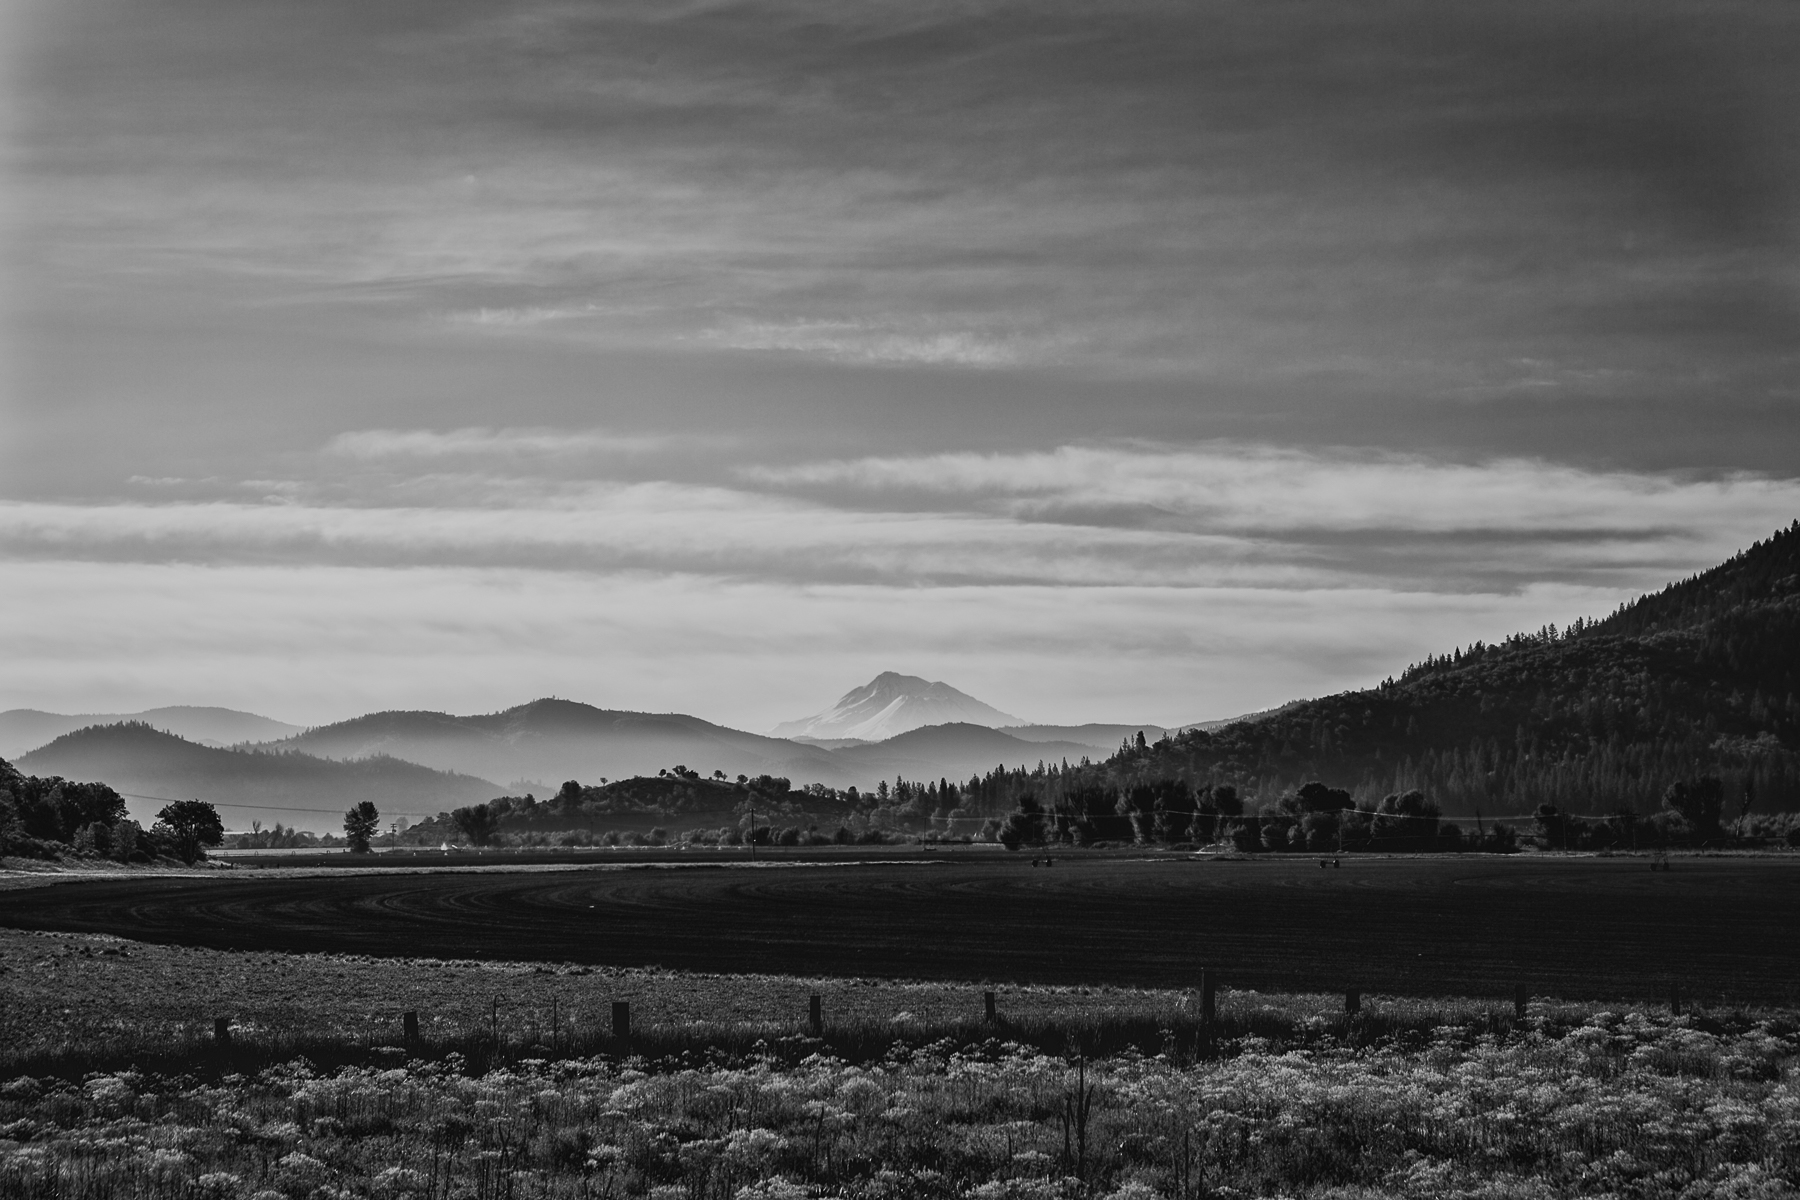 Farms and Mount Shasta